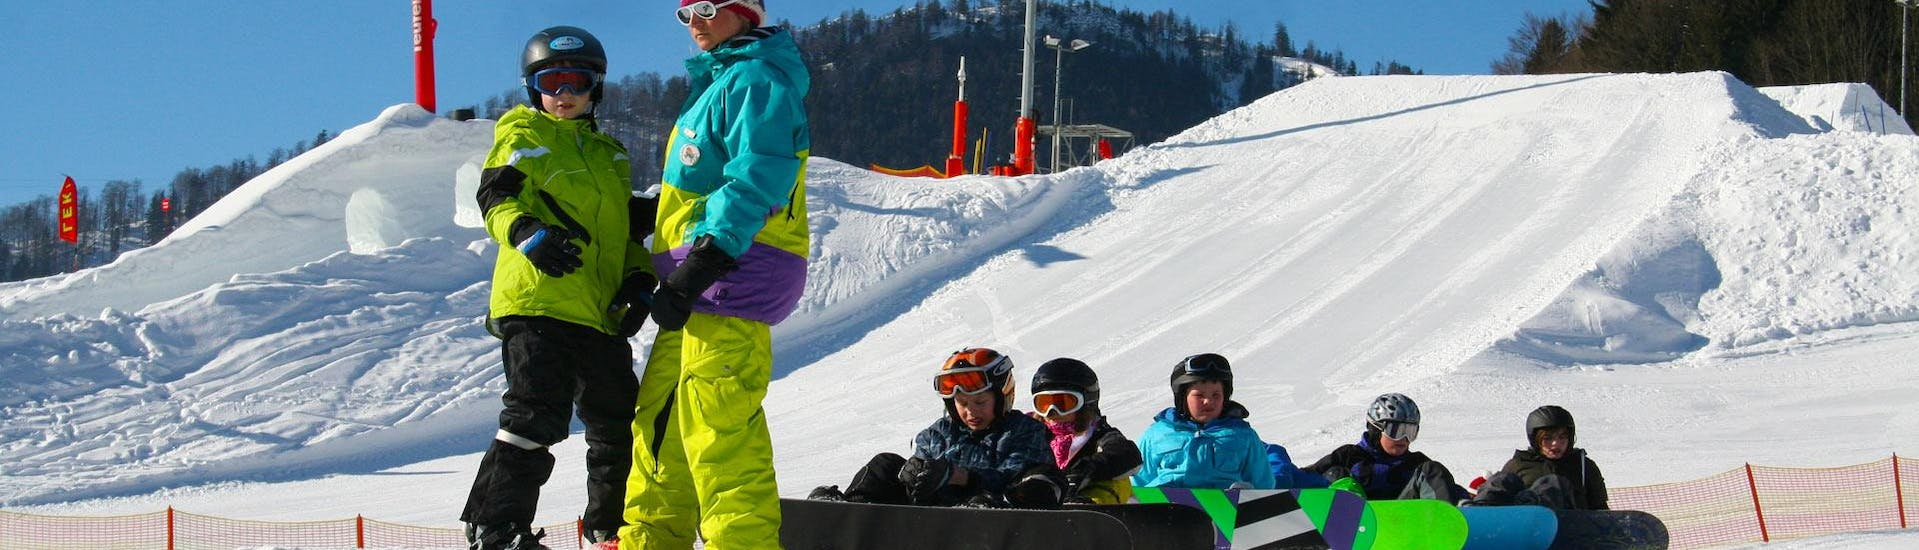 Some people are taking snowboarding lessons for beginners with ski school Ruhpolding at the Westernberg ski area.